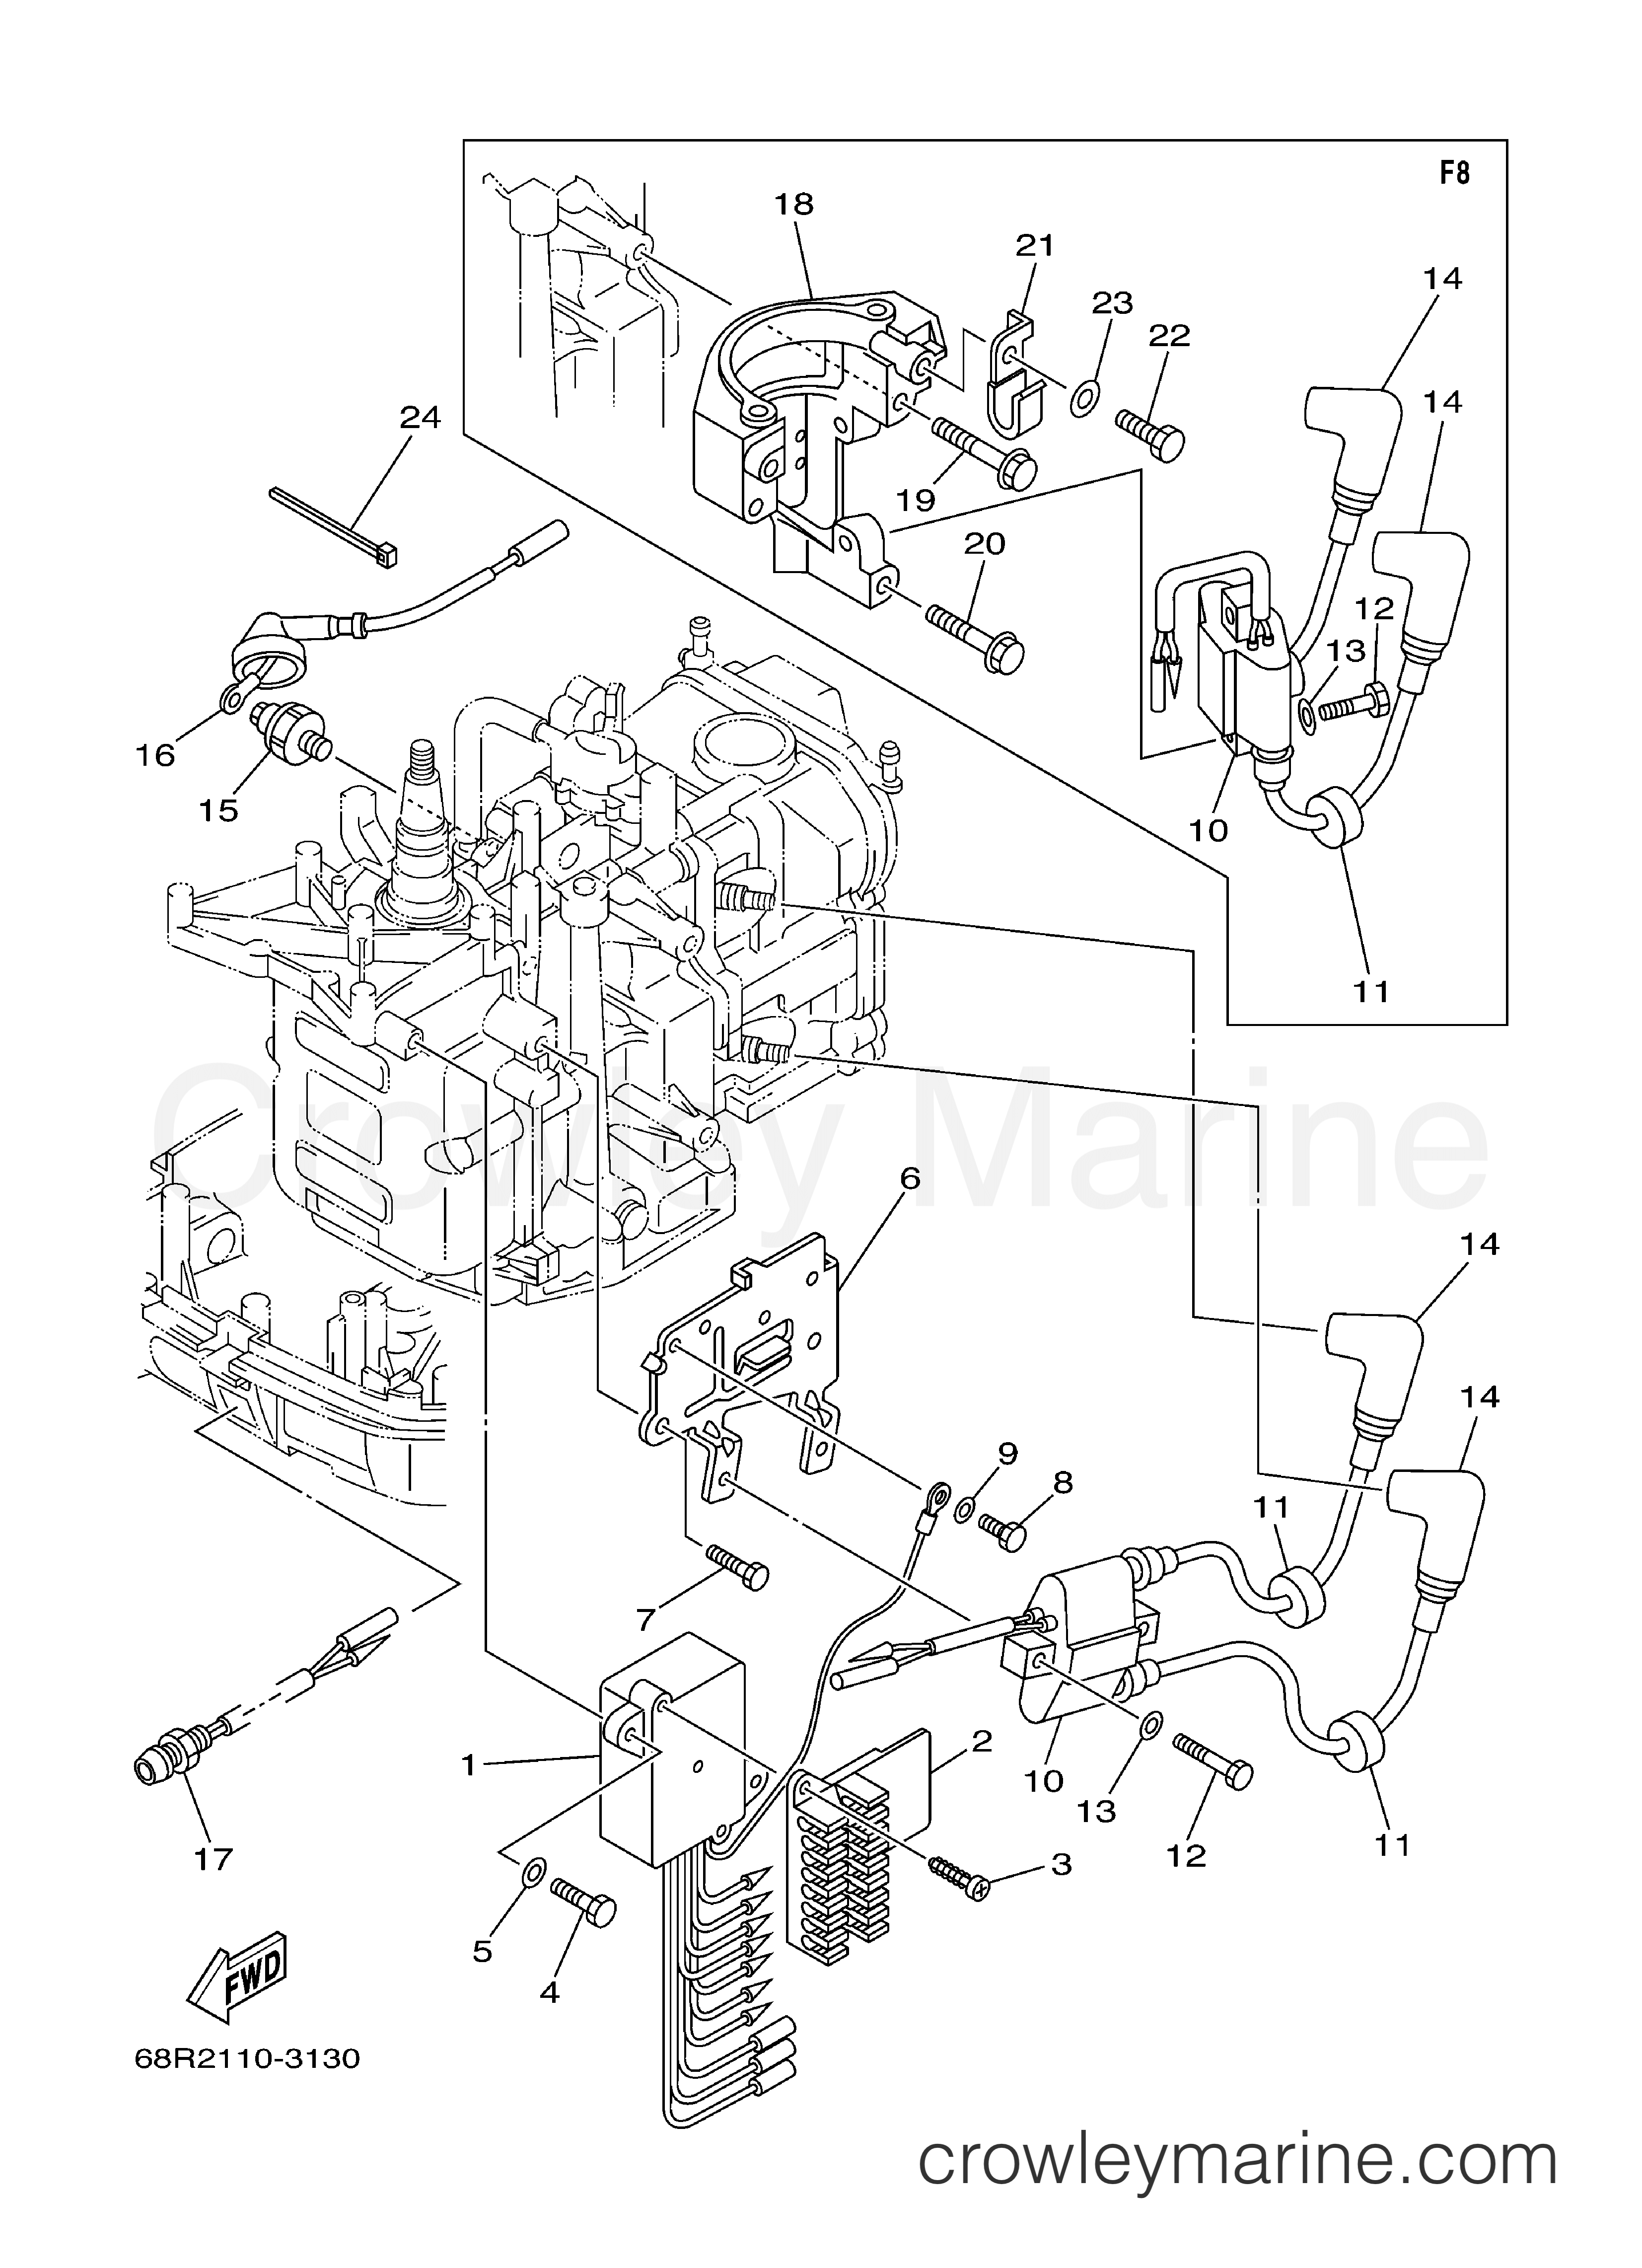 Yamaha Ignition Coil Wiring Diagram